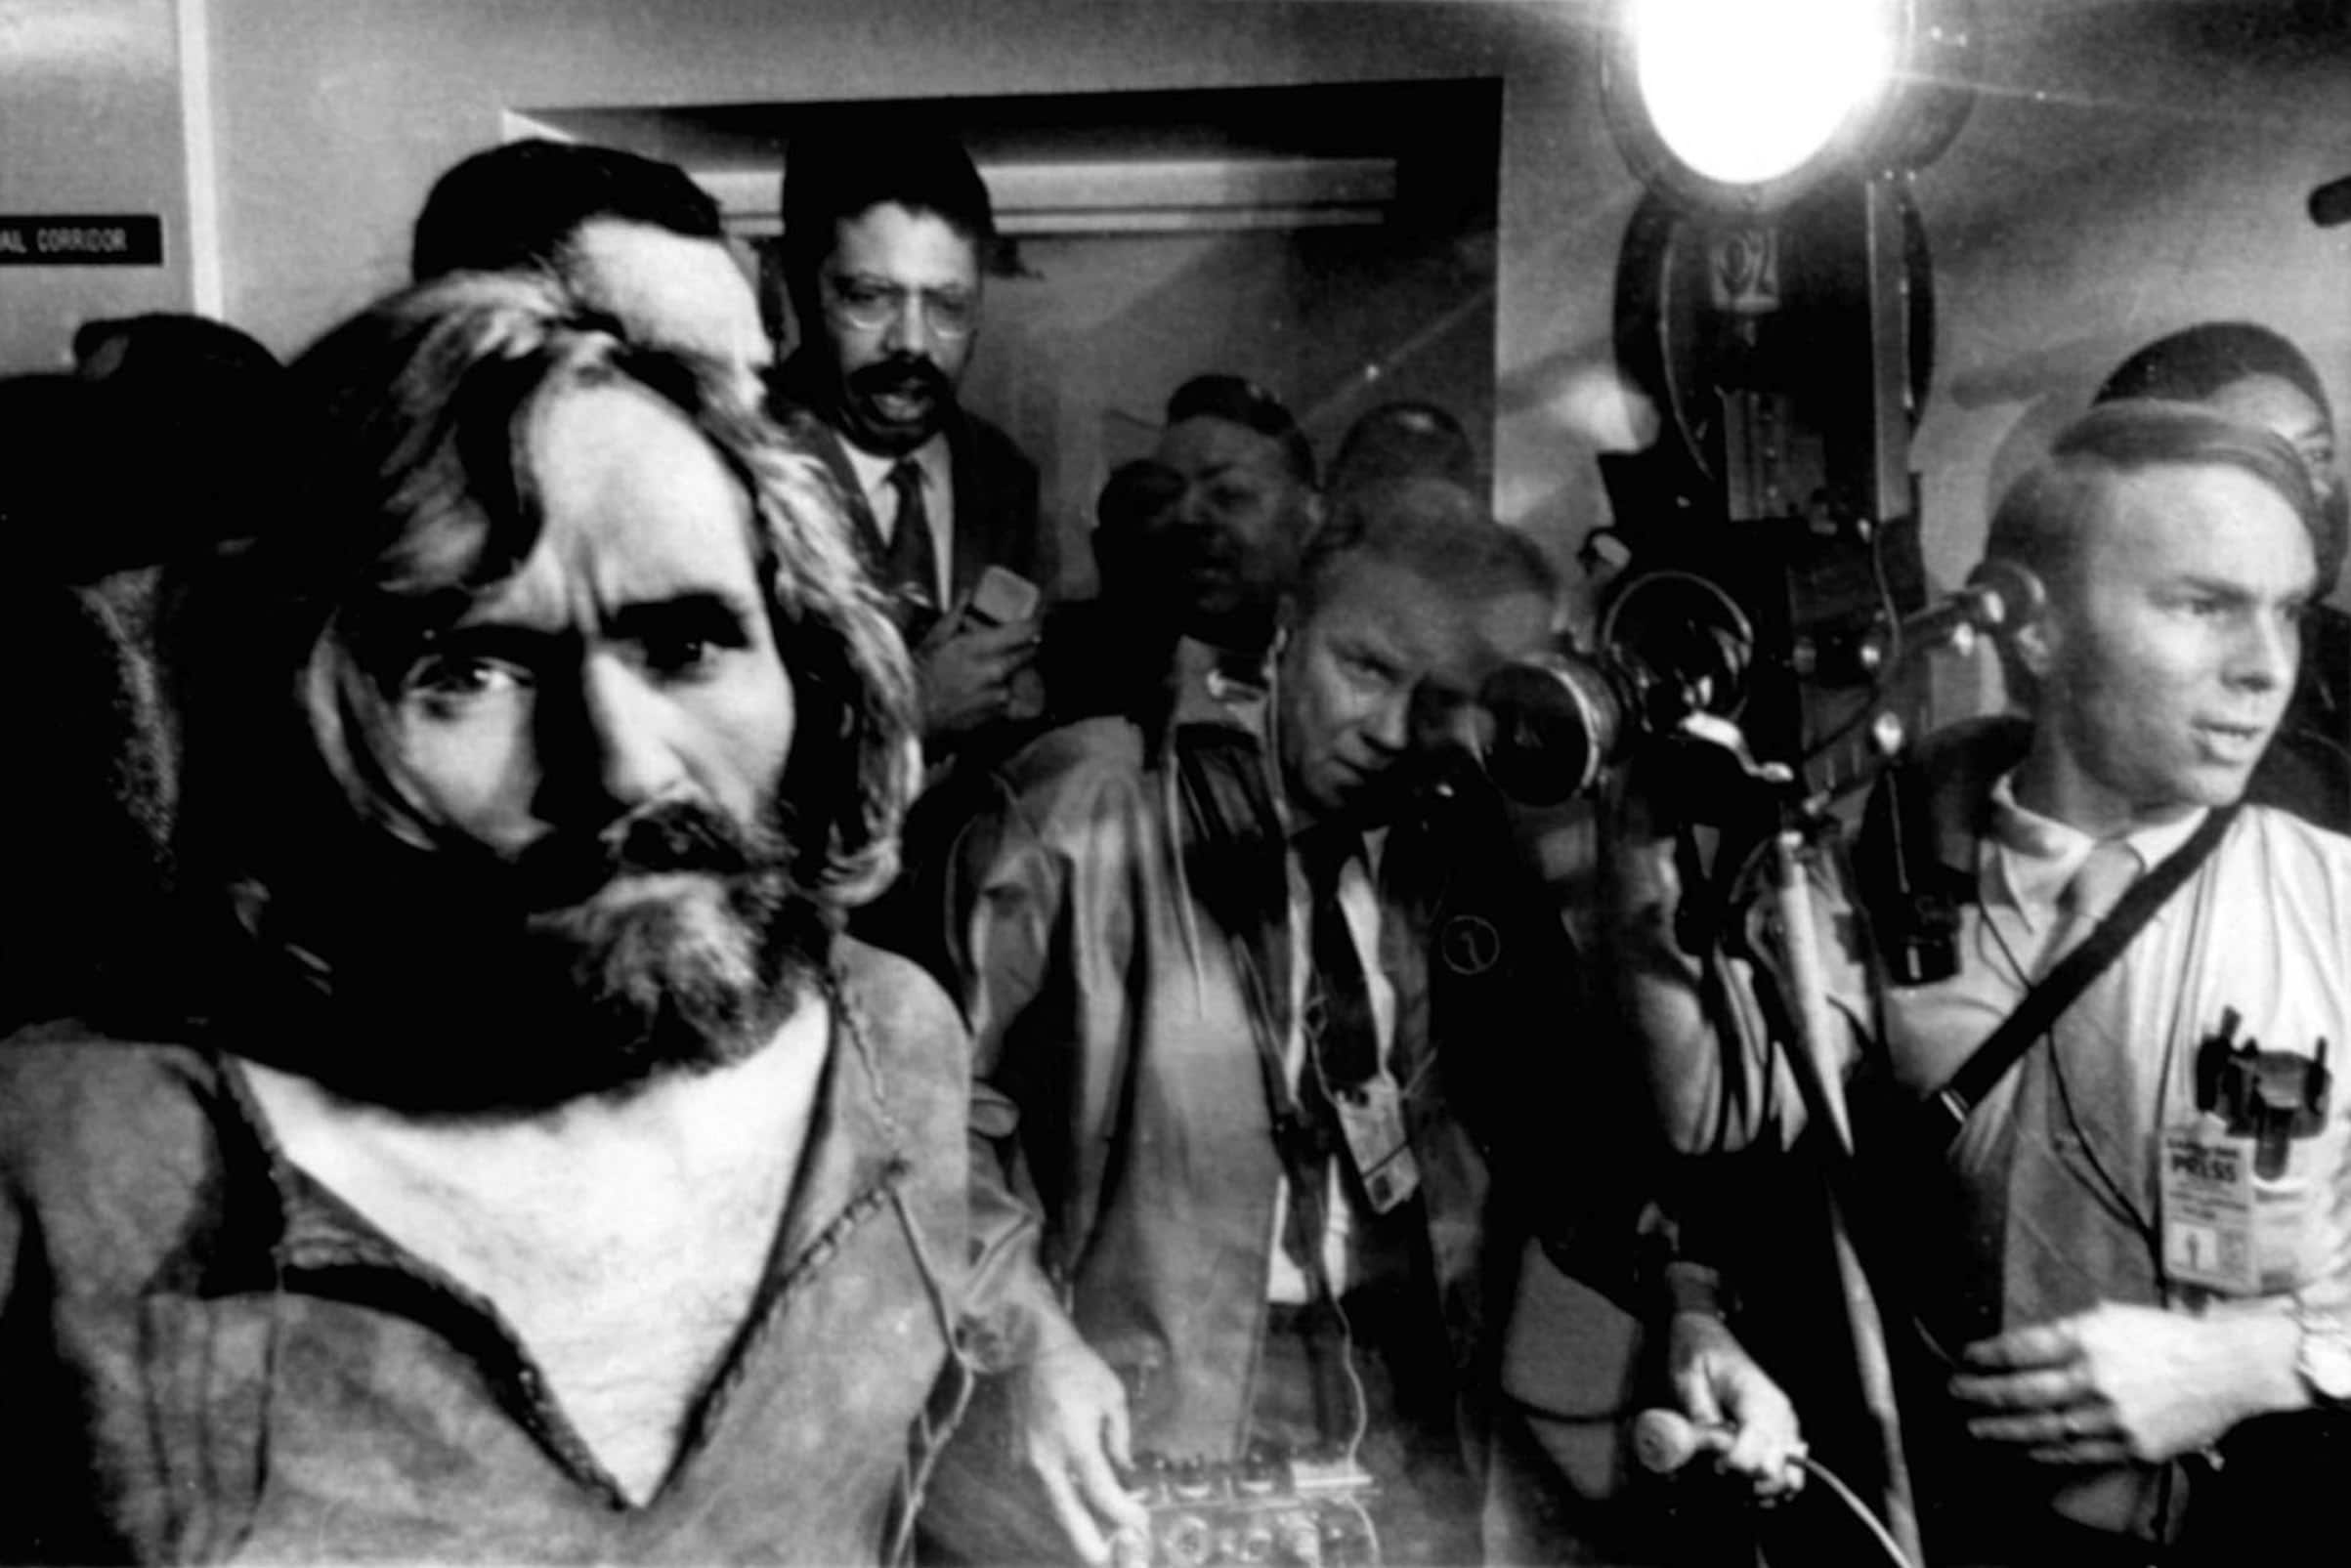 New Book Details How Doris Day's Son Terry Melcher Was 'Very Paranoid' After Manson Family Murders